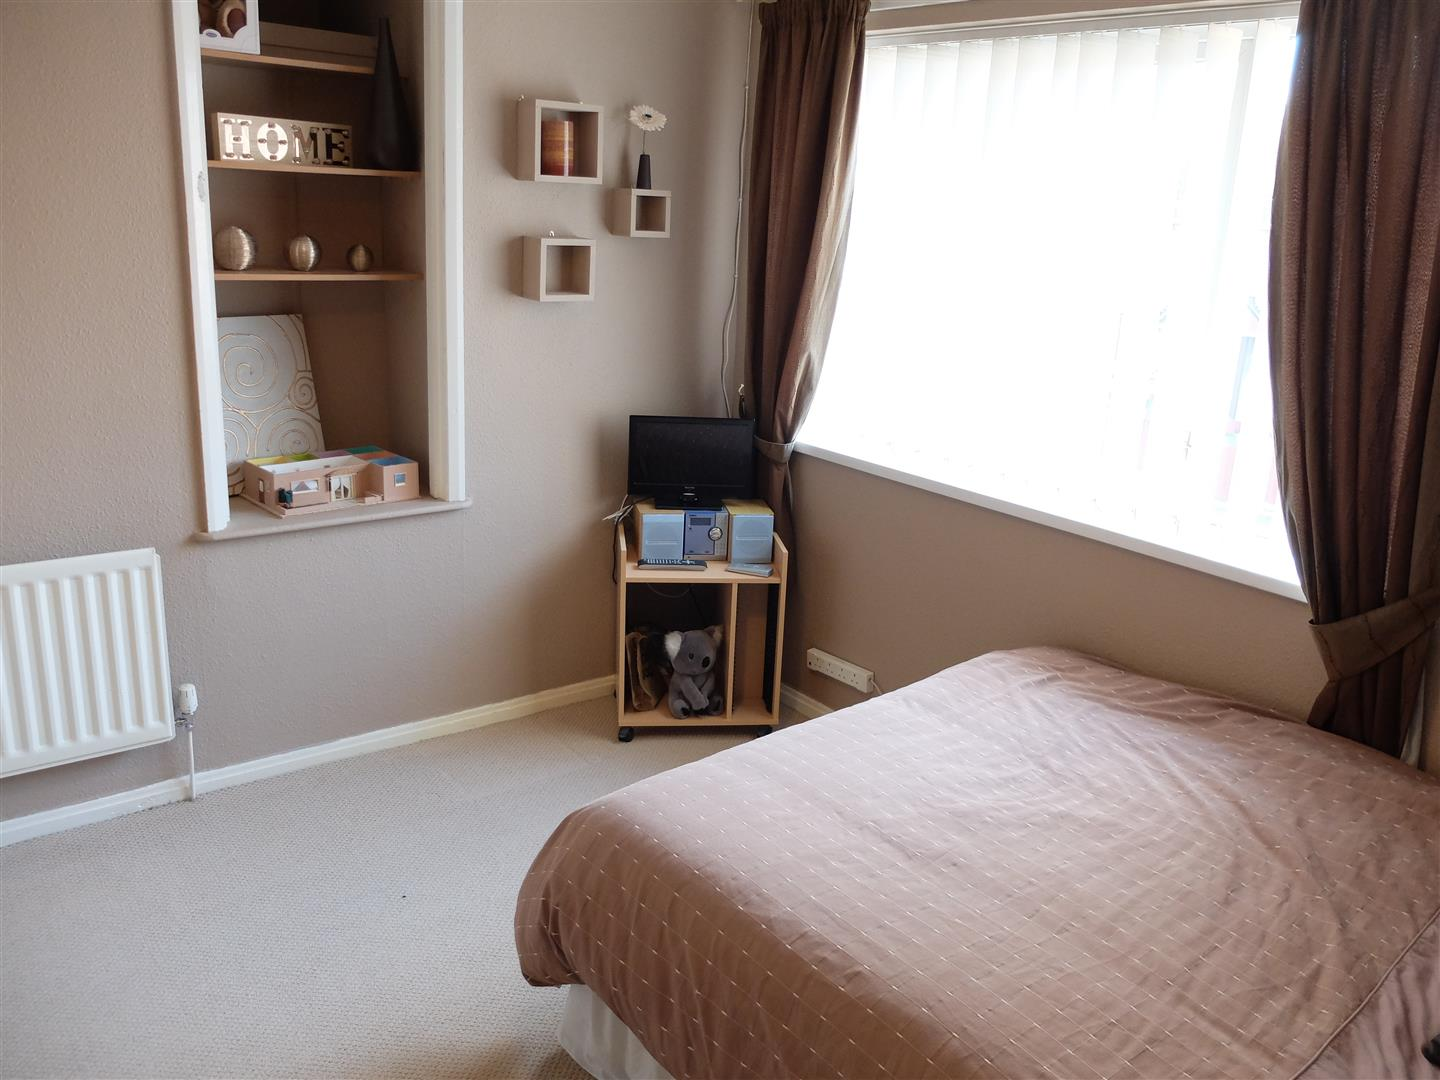 3 Bedrooms House - Terraced For Sale 41 Mardale Road Carlisle 89,500